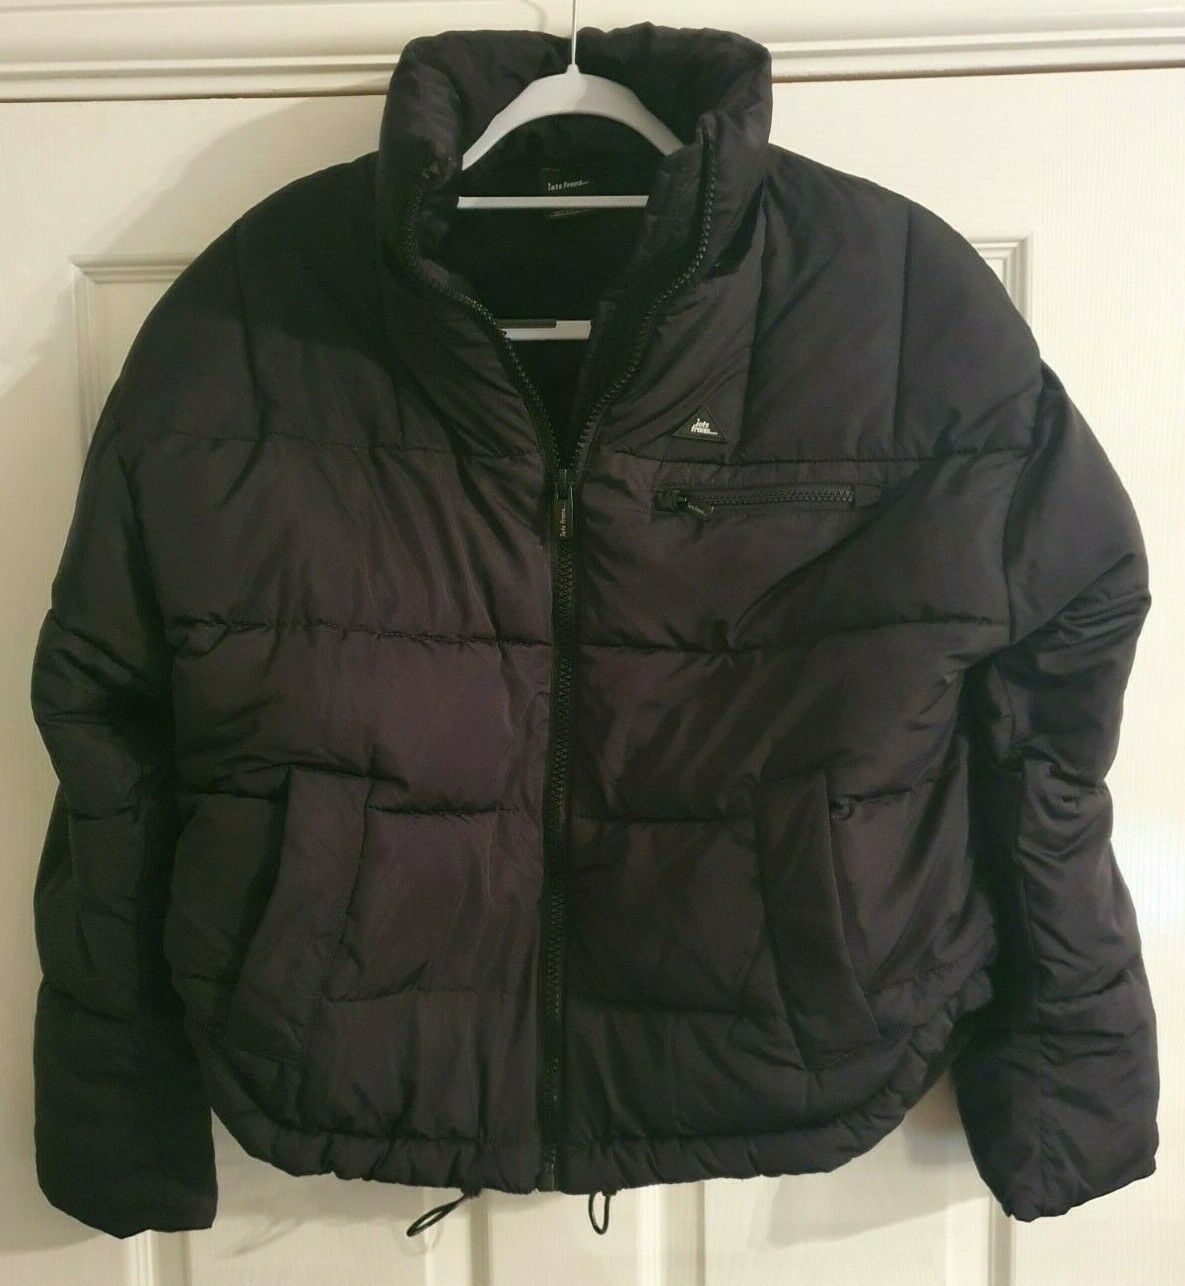 UO IETS FRANS WOMENS Hooded Puffer Jacket BLACK SIZE XS NEW FREE UK P&P